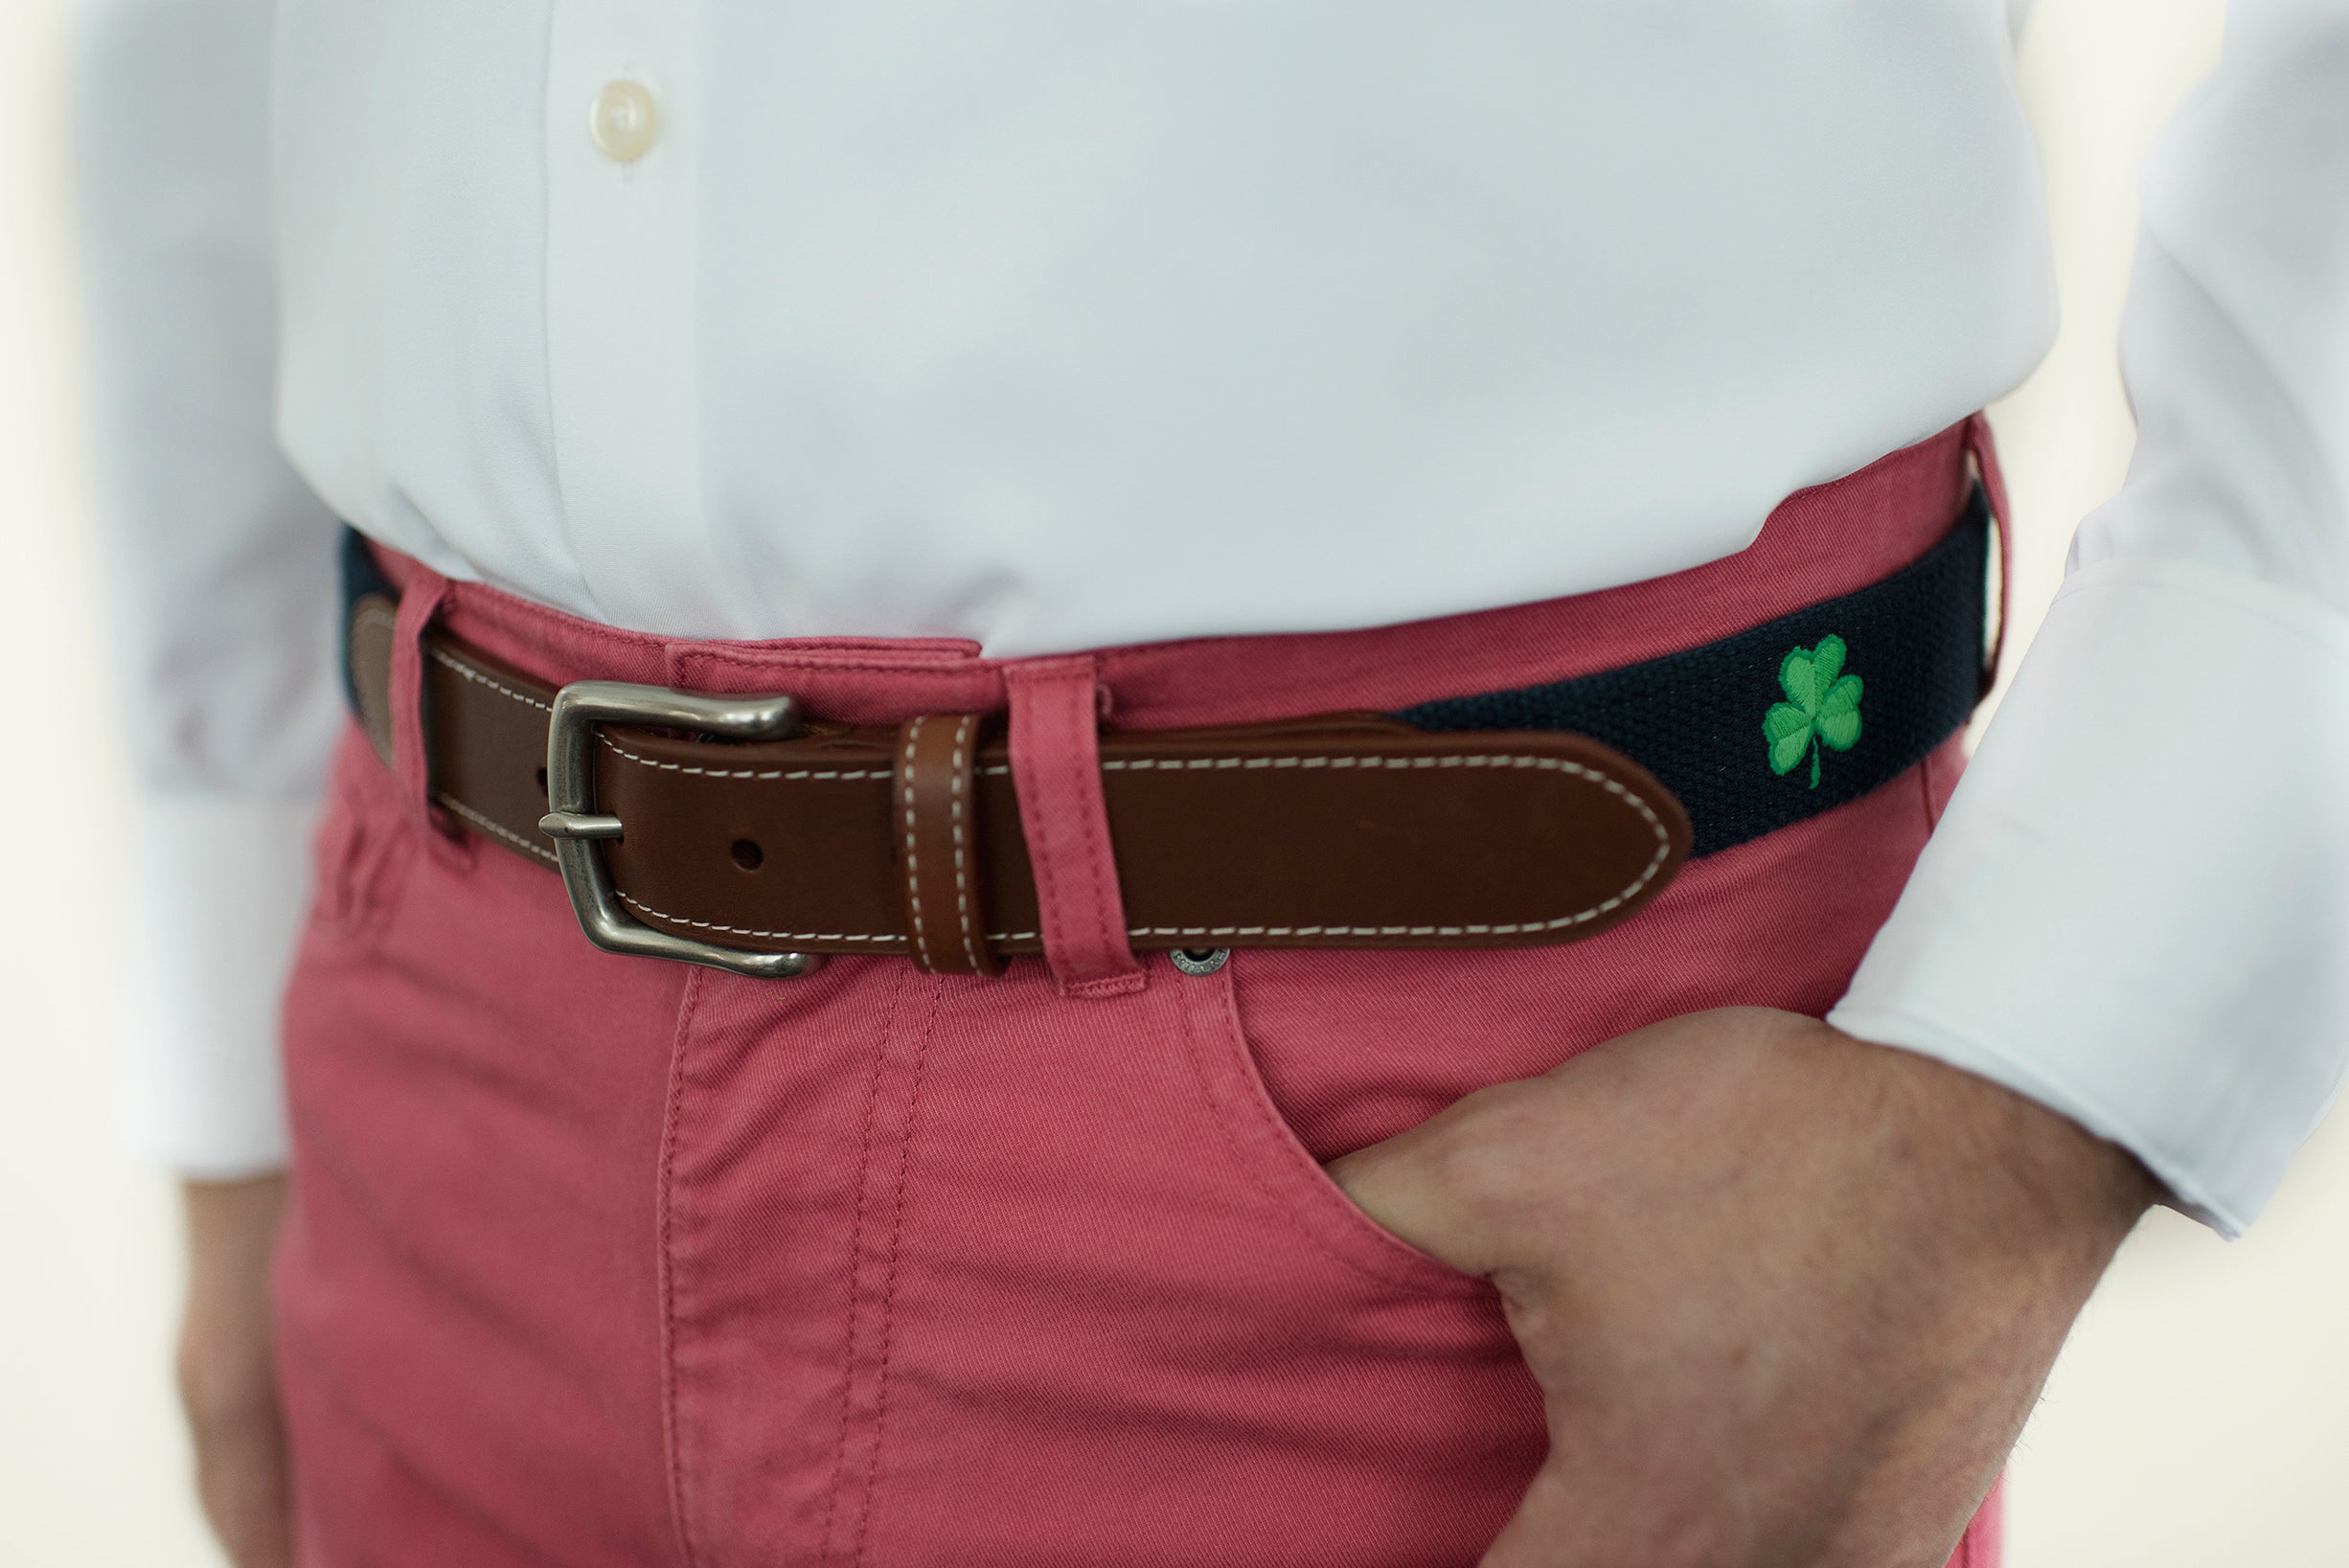 Shamrock Belt (patriot navy)